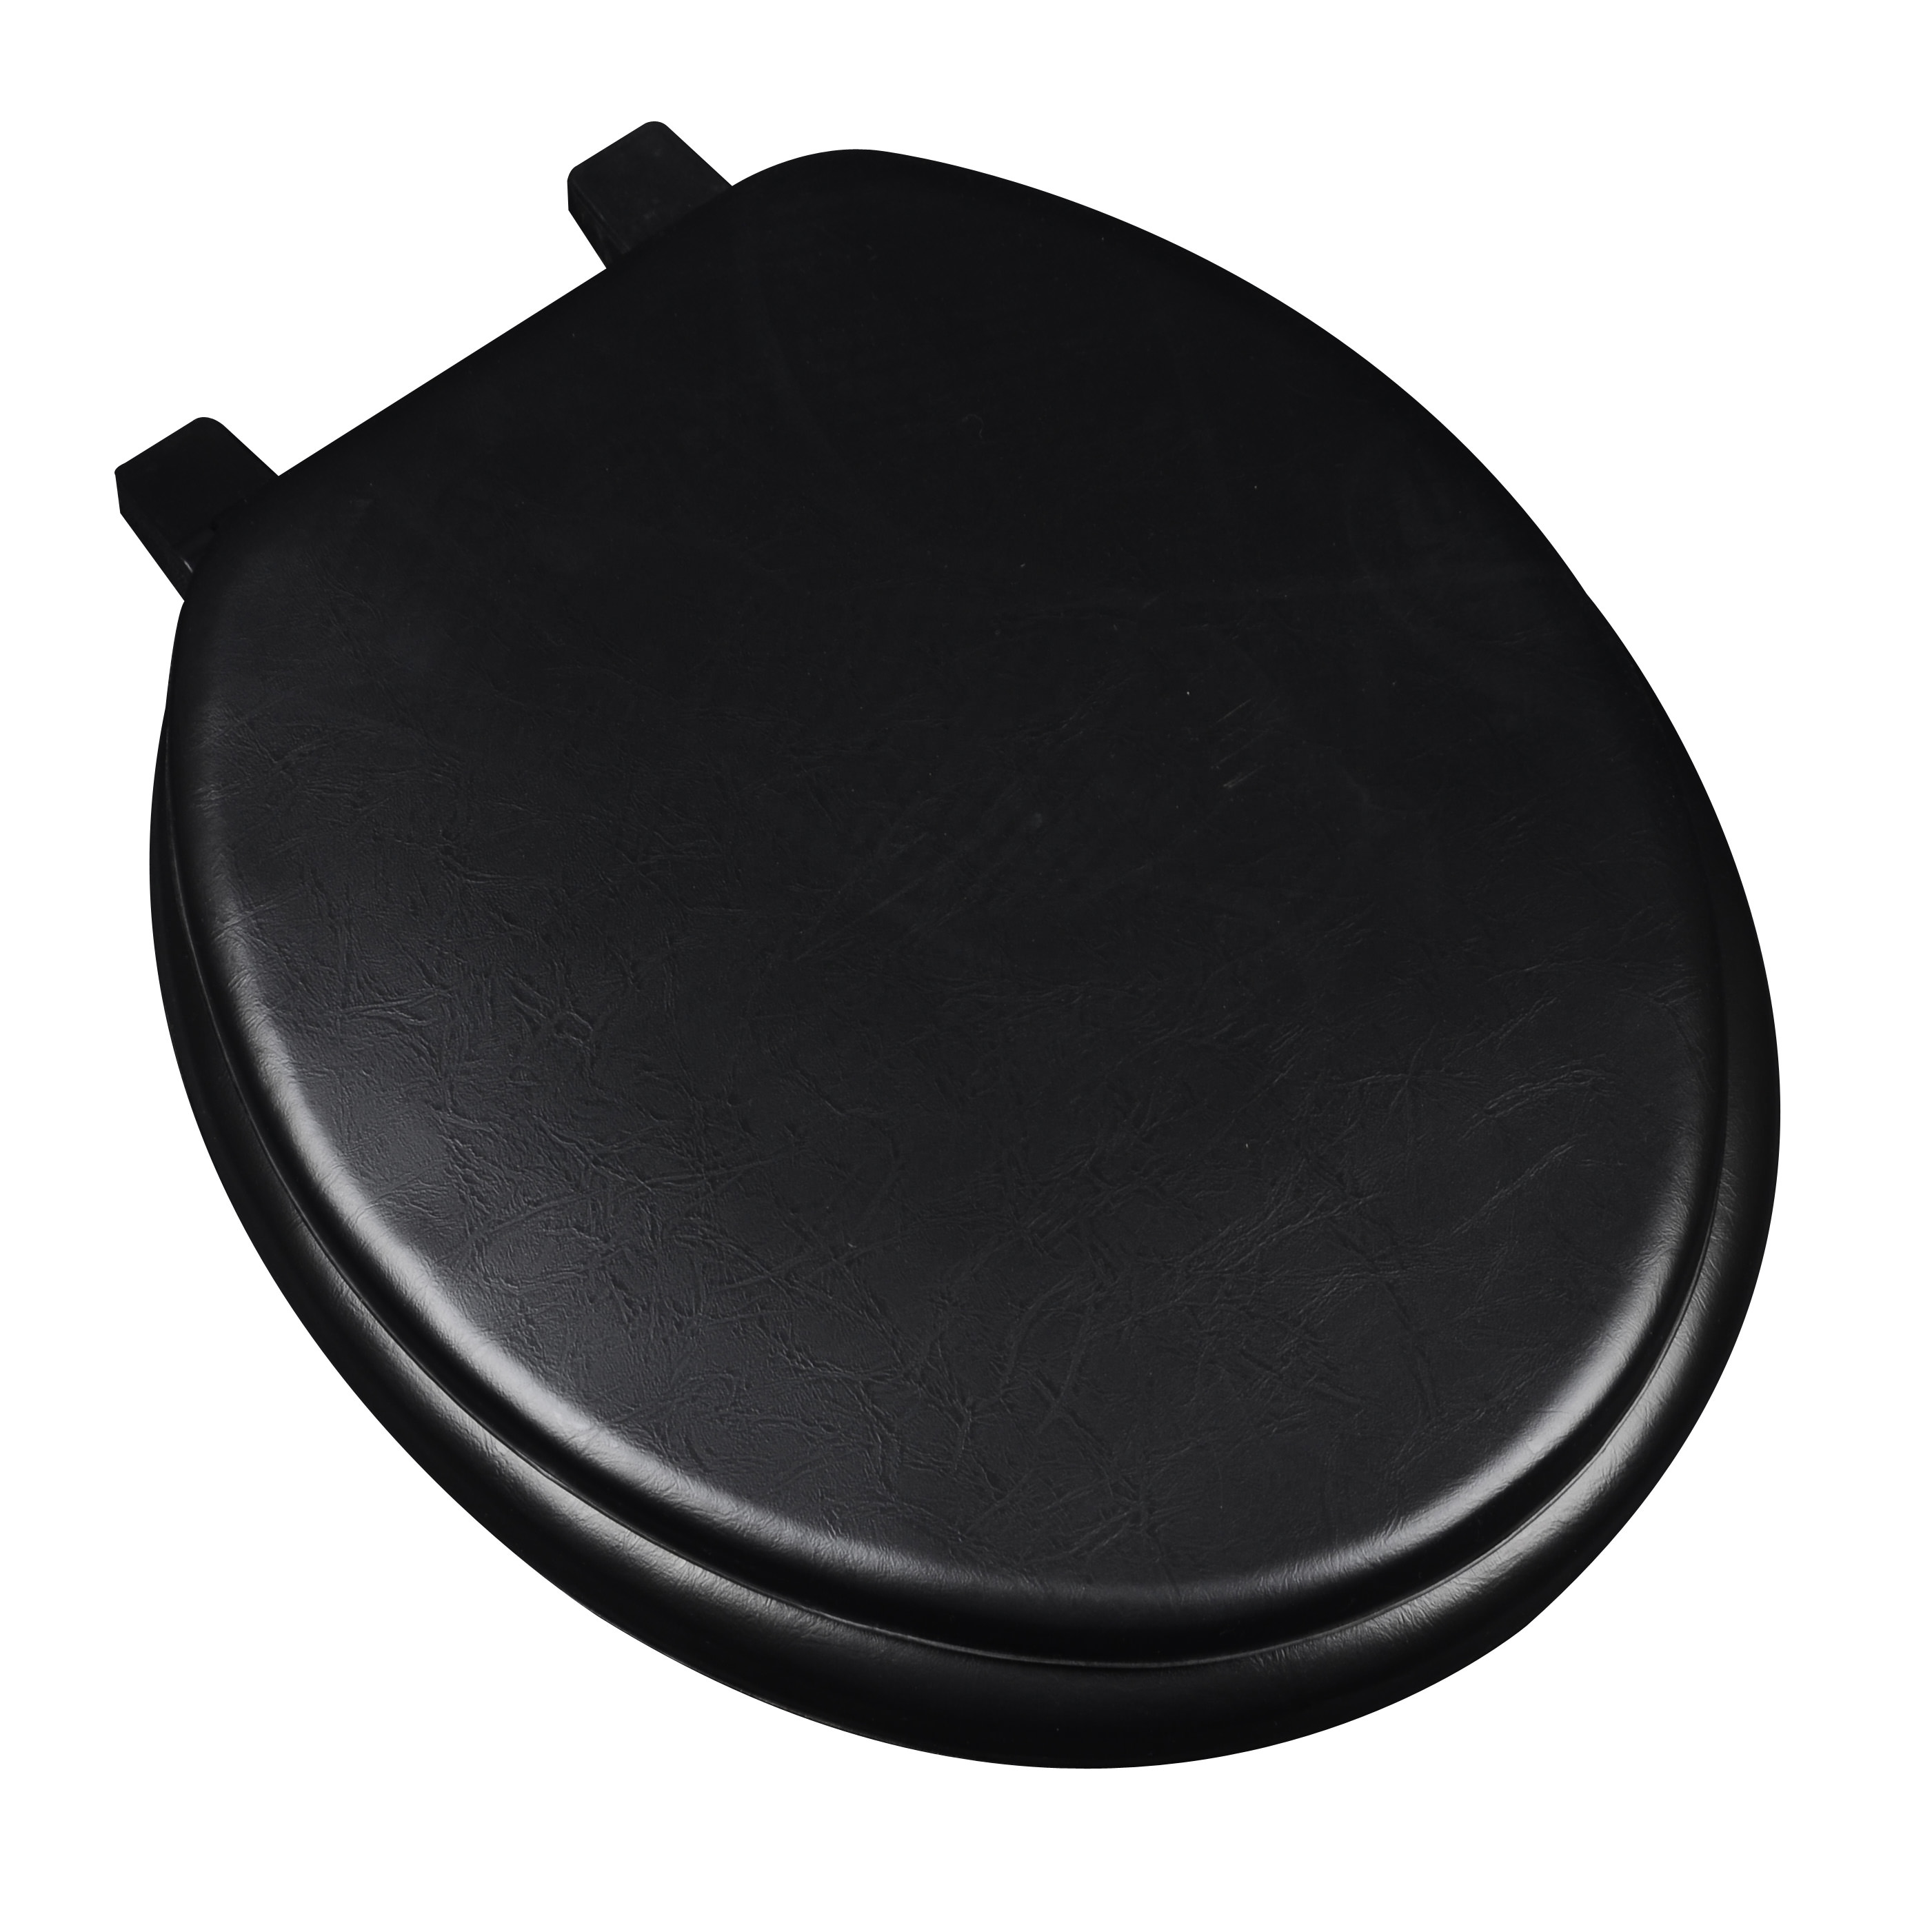 BathDecor Deluxe Soft Round Toilet Seat with a Closed Front in Black.